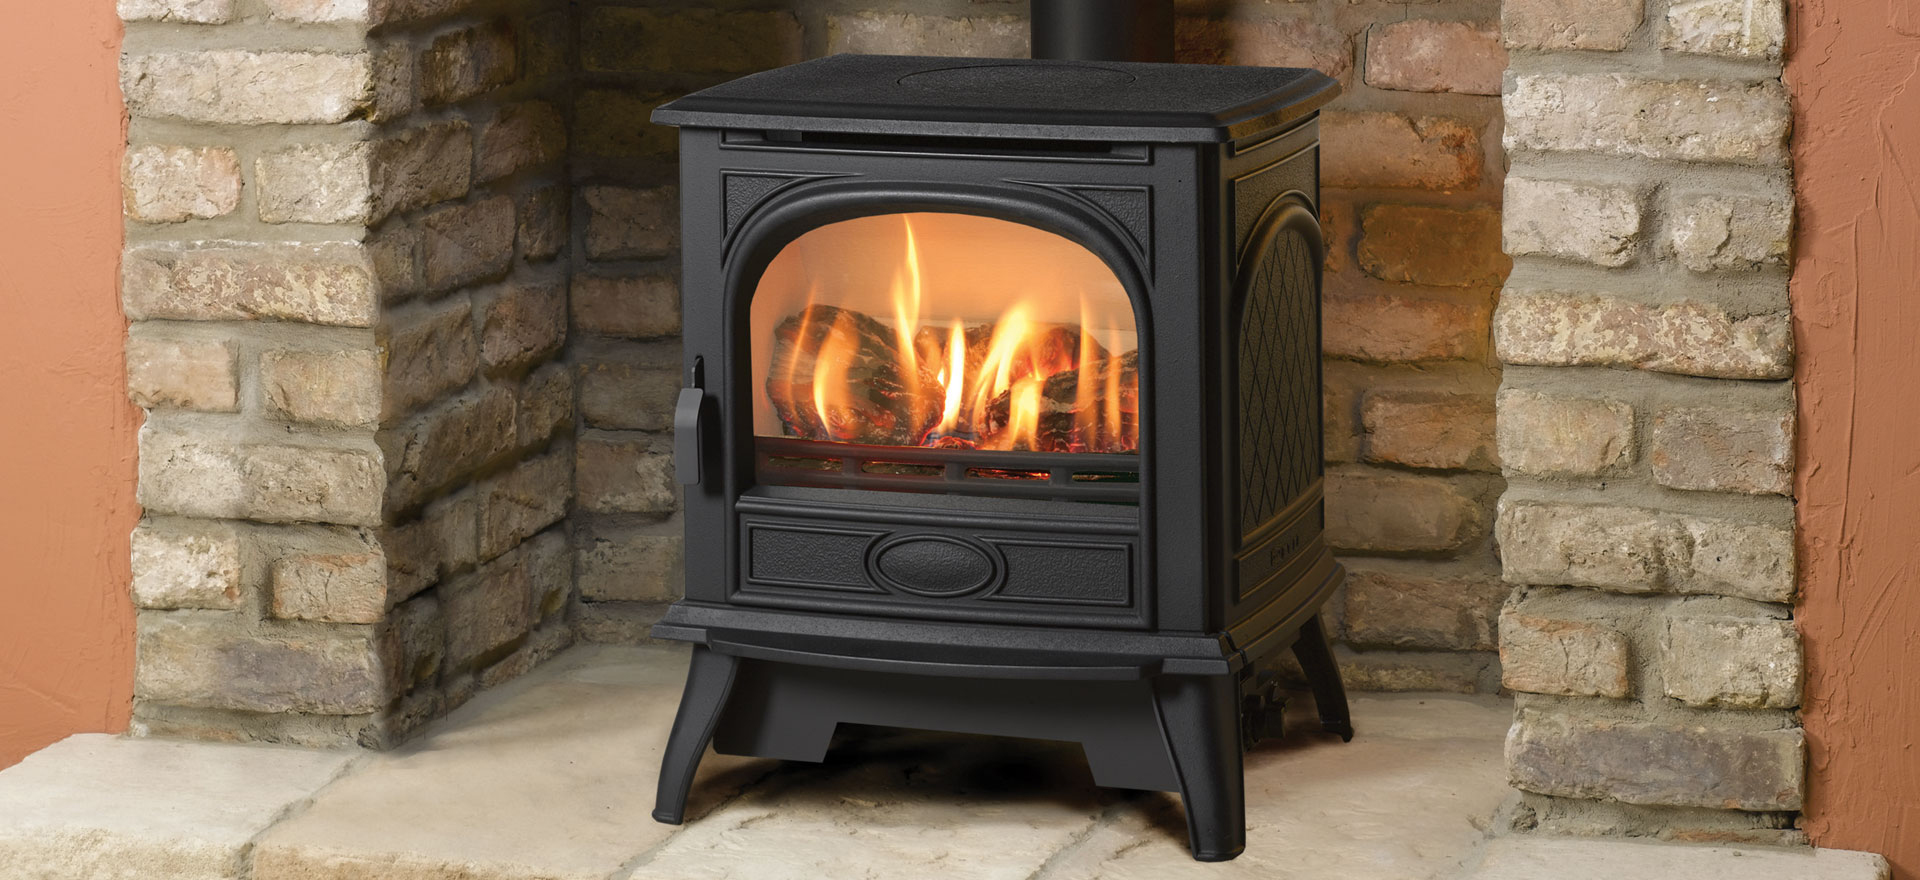 Why choose a gas stove?